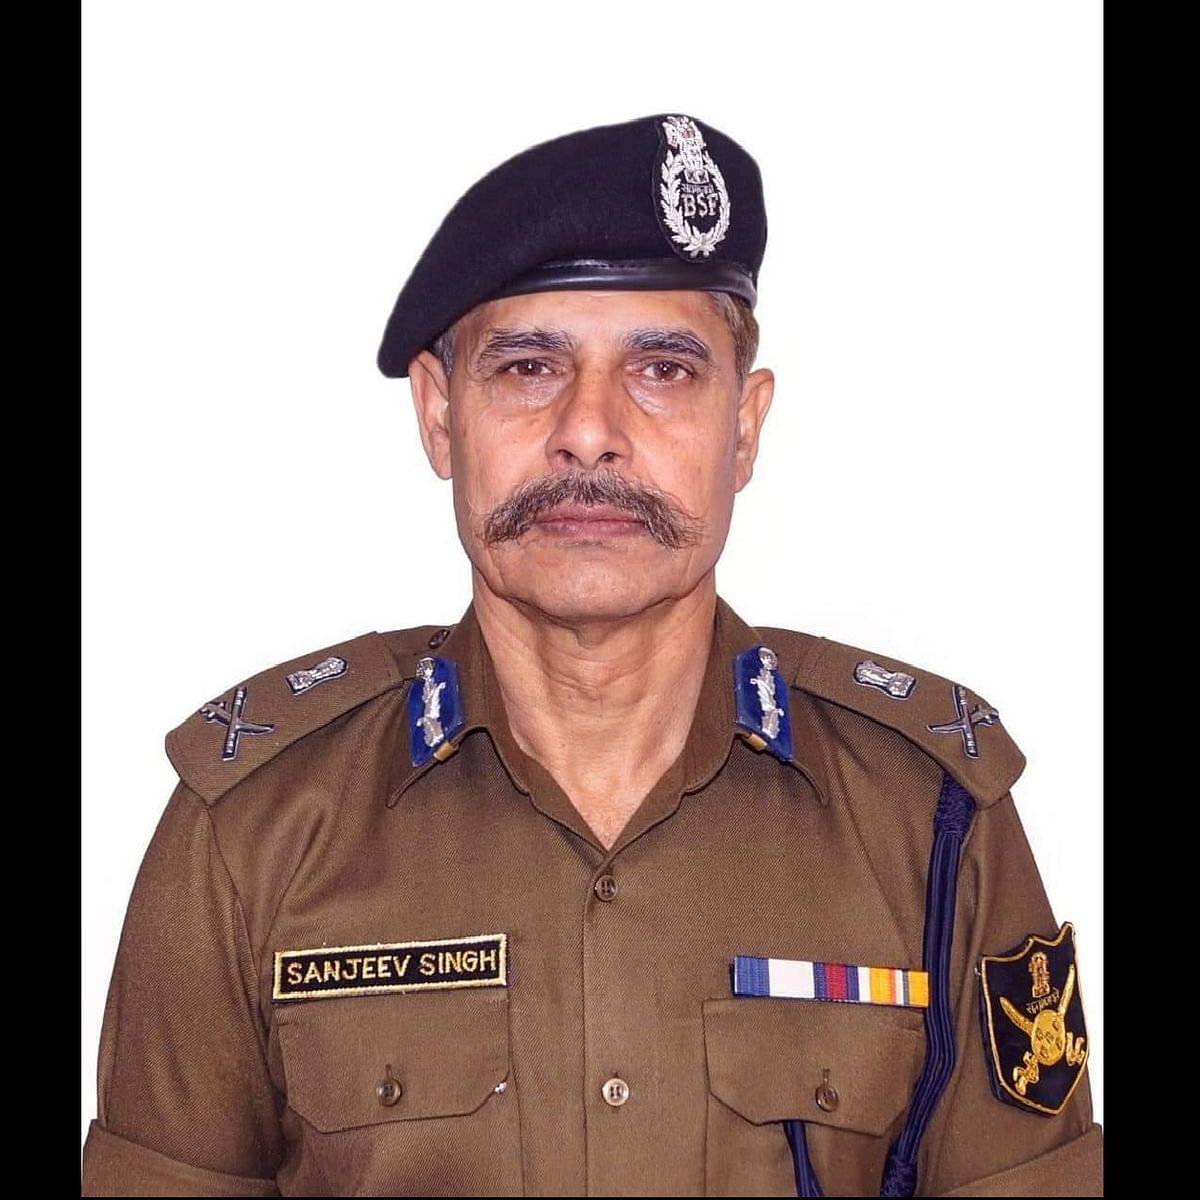 NIA officer Sanjeev Singh who led probe into Pathankot attack dies of dengue